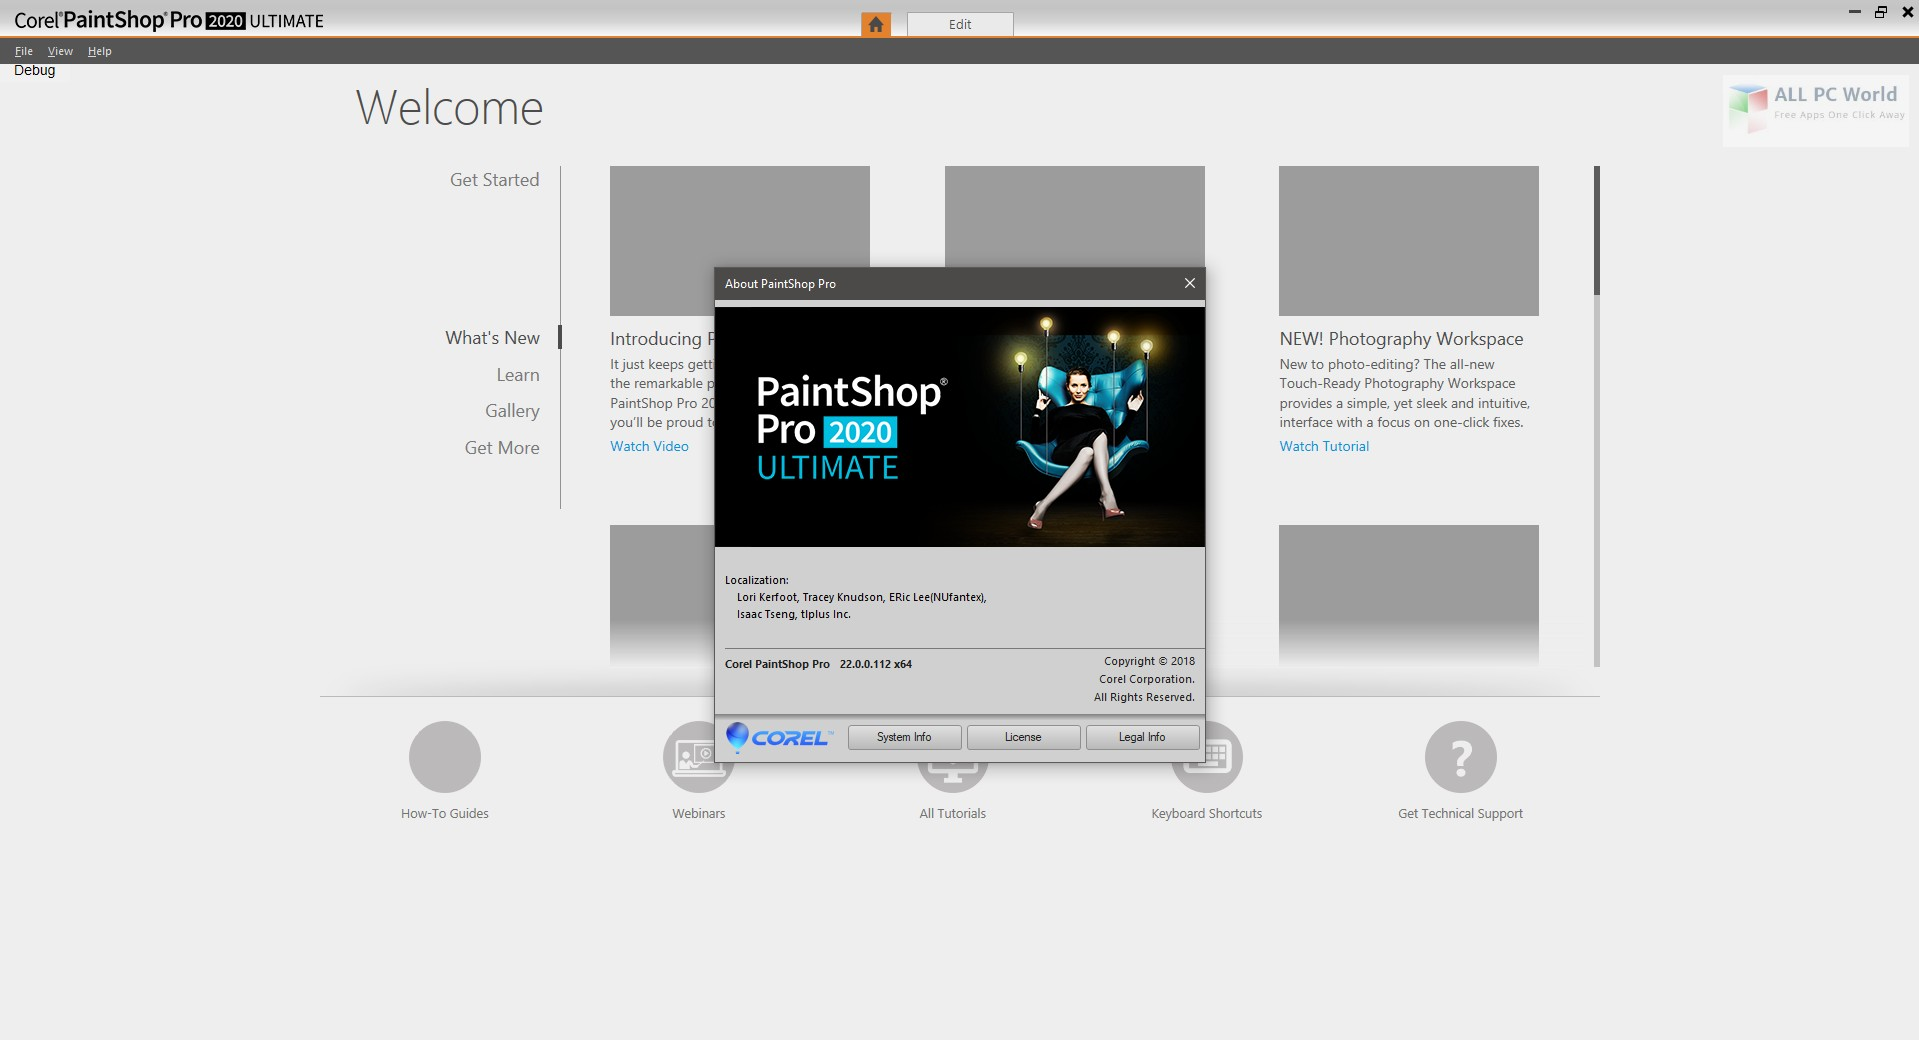 Corel PaintShop Pro Ultimate 2020 v22.0 download free